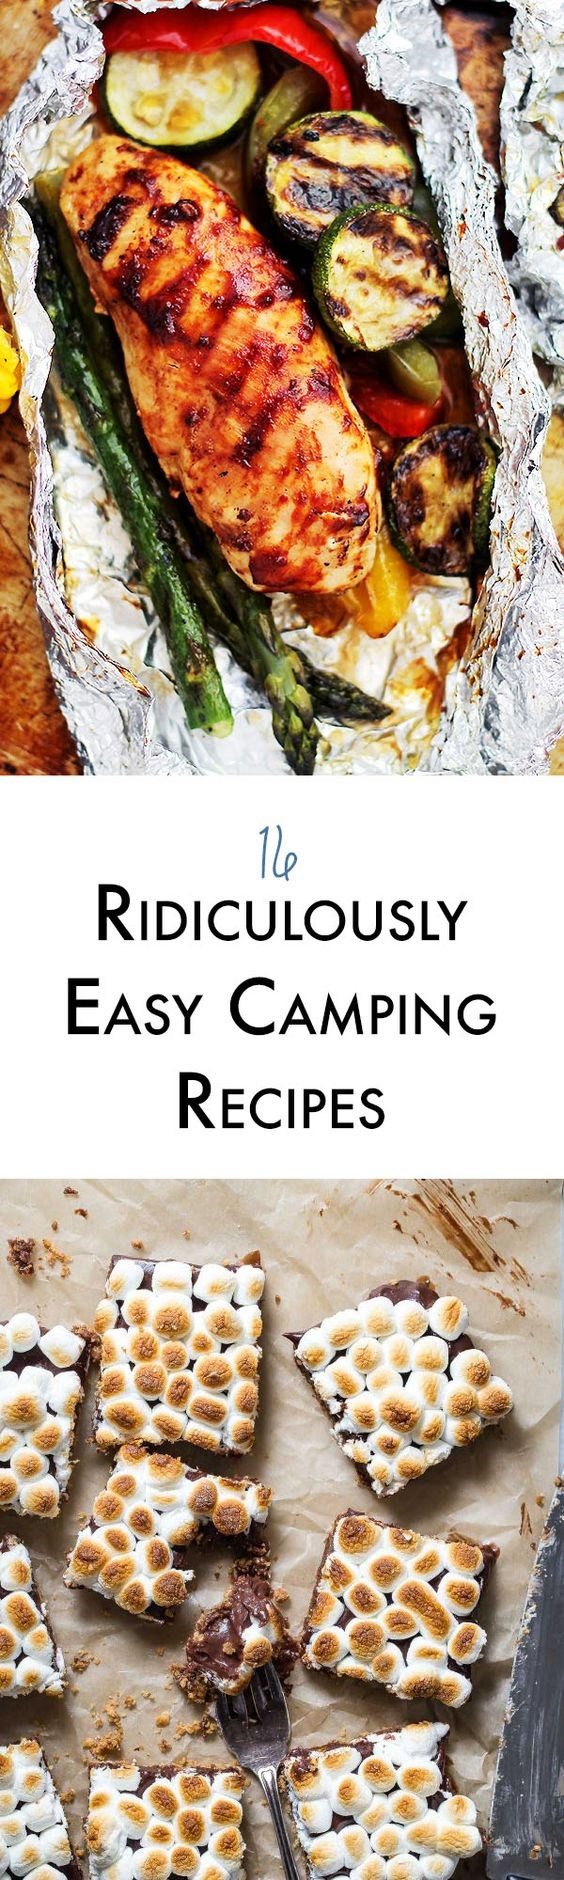 Camping Fun - Summer time is camping time. These easy camping recipes will have you and your family running for the woods! abite.co∕...